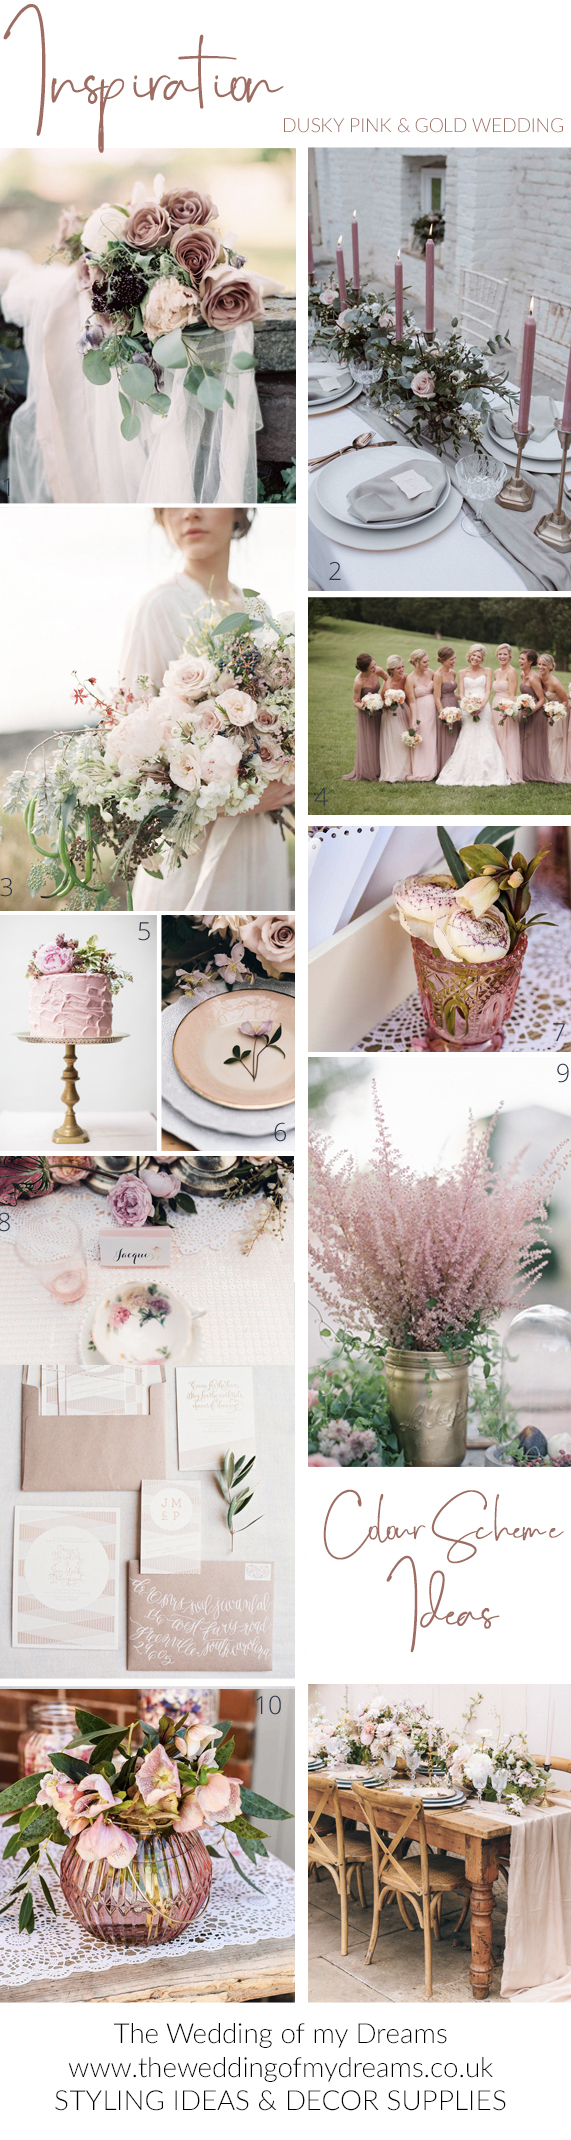 wedding colour scheme ideas dusky pink and gold insiration